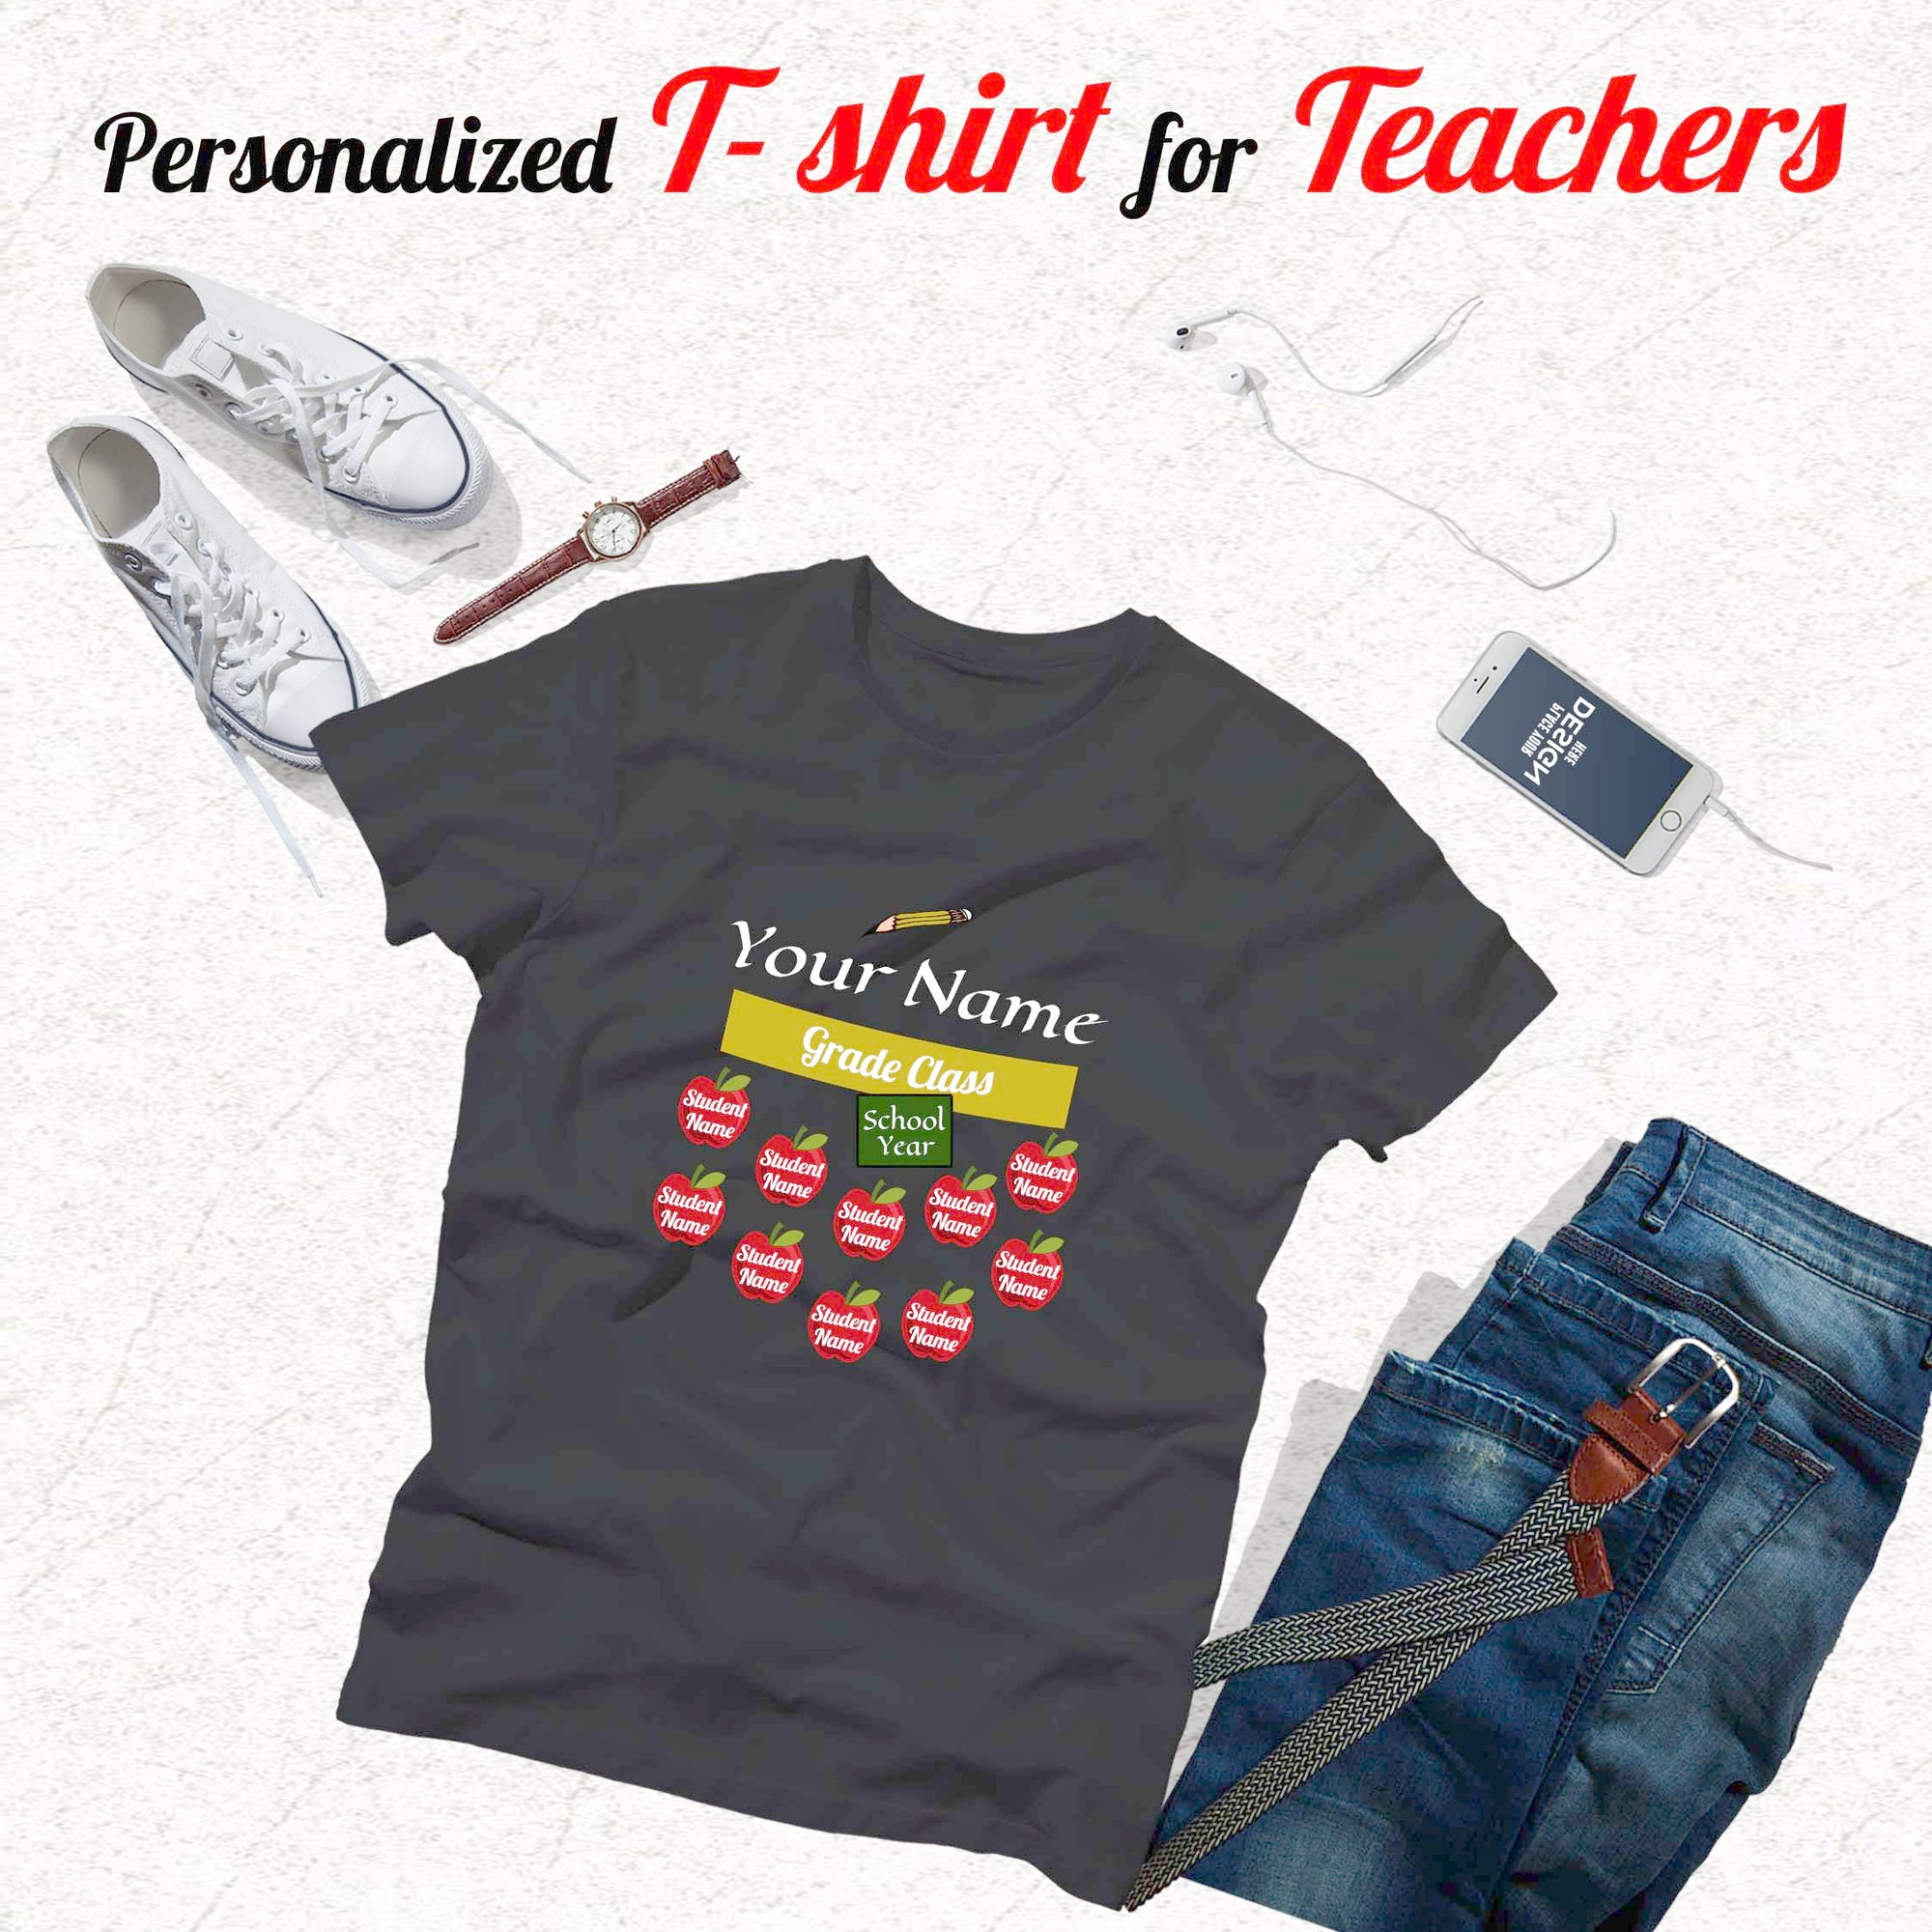 PERSONALIZED T-SHIRT - create your own teacher T-shirt - add your name, grade, year school, & students name